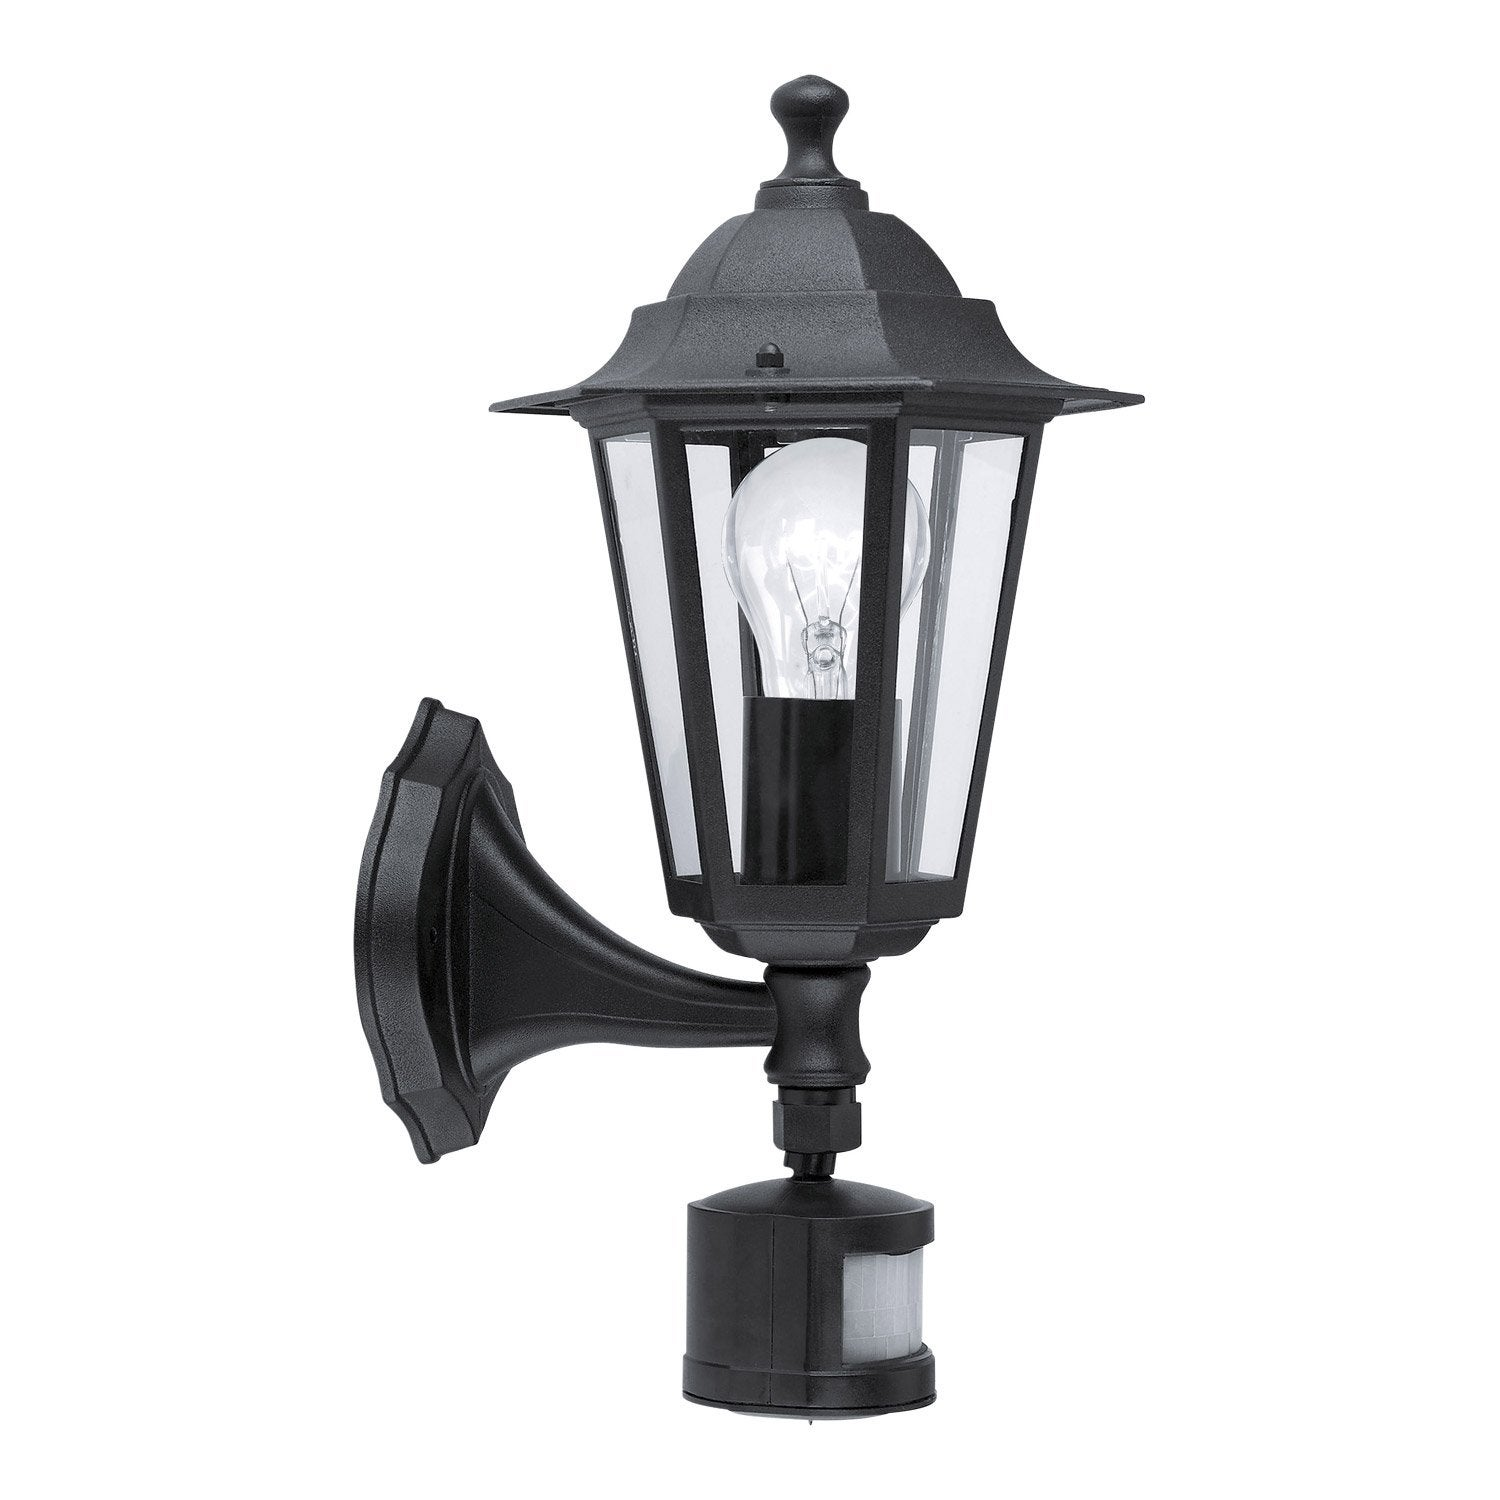 Applique d tection ext rieure laterna e27 60 w noir - Lanterne exterieur leroy merlin ...